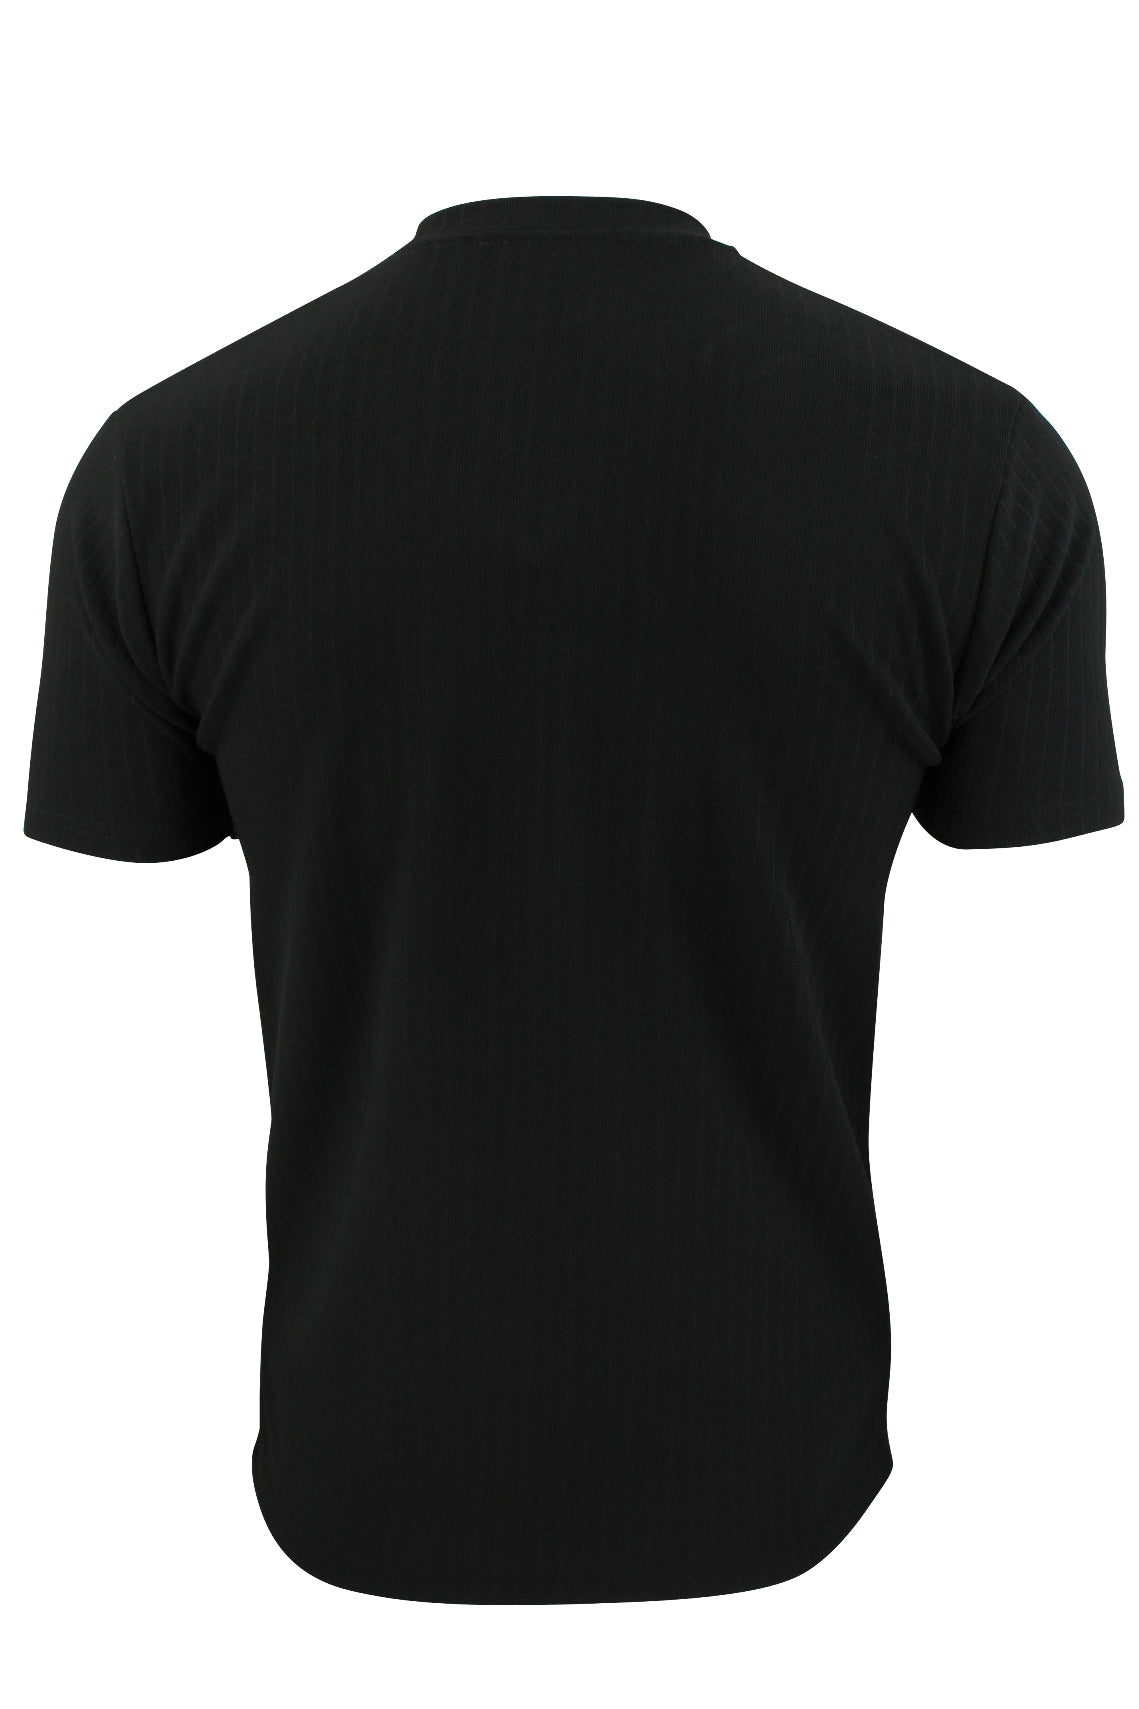 Mens Rib T - Shirt by Xact Clothing Crew Neck Slim Gym Muscle Fit-3